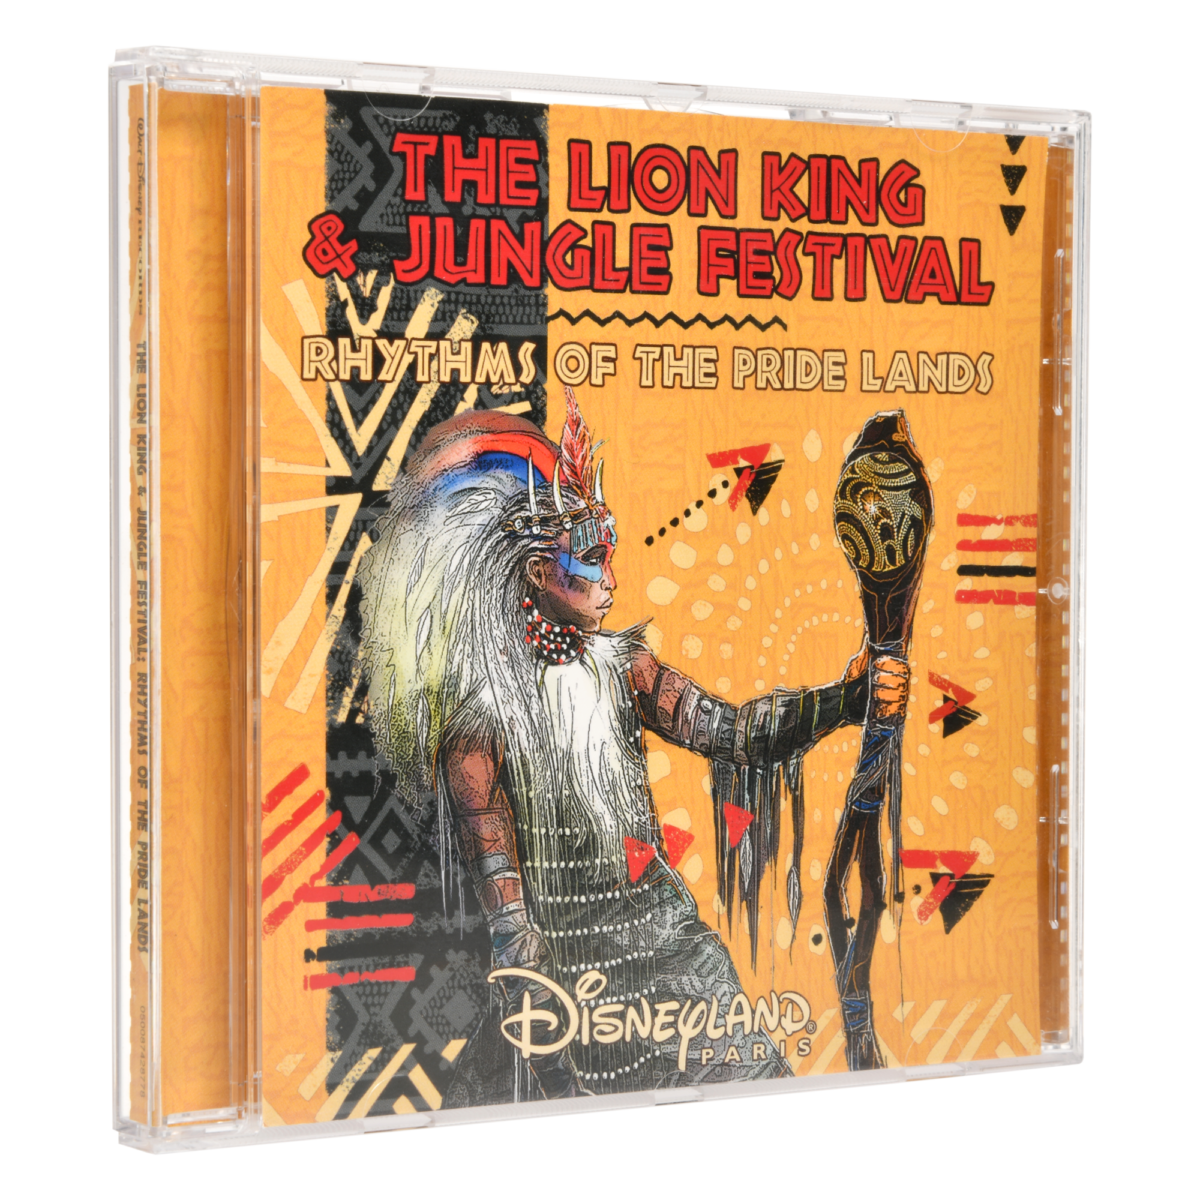 CD Cover zur Rhythms Of The Pride Lands Show im Disneyland Paris